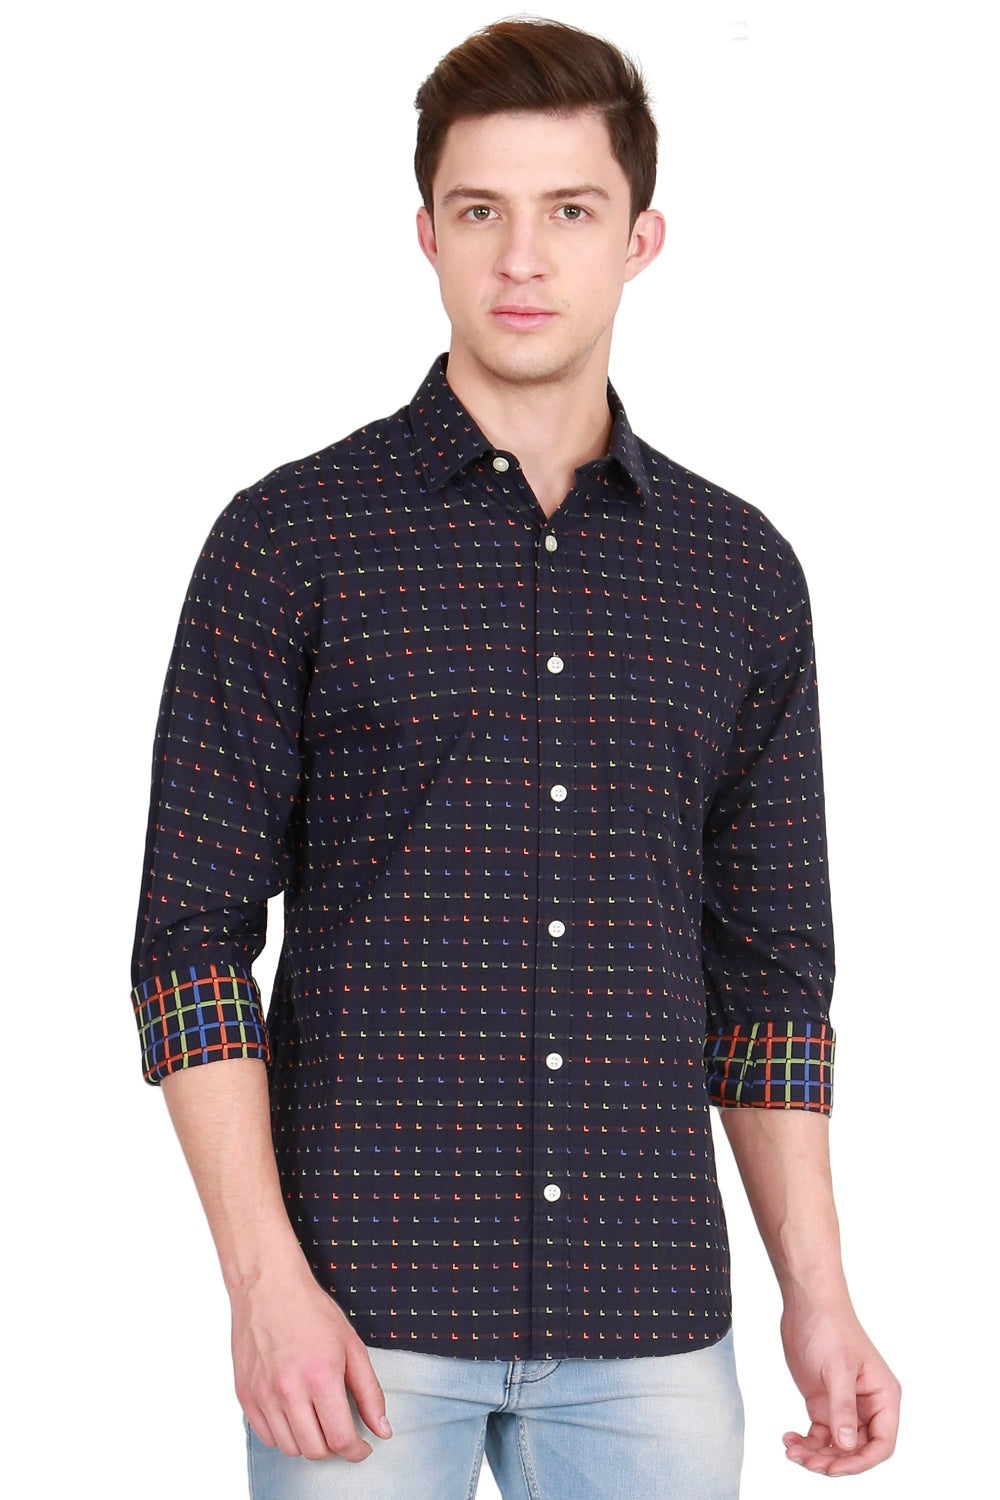 IMYOUNG Multicolored Checked Casual Shirt